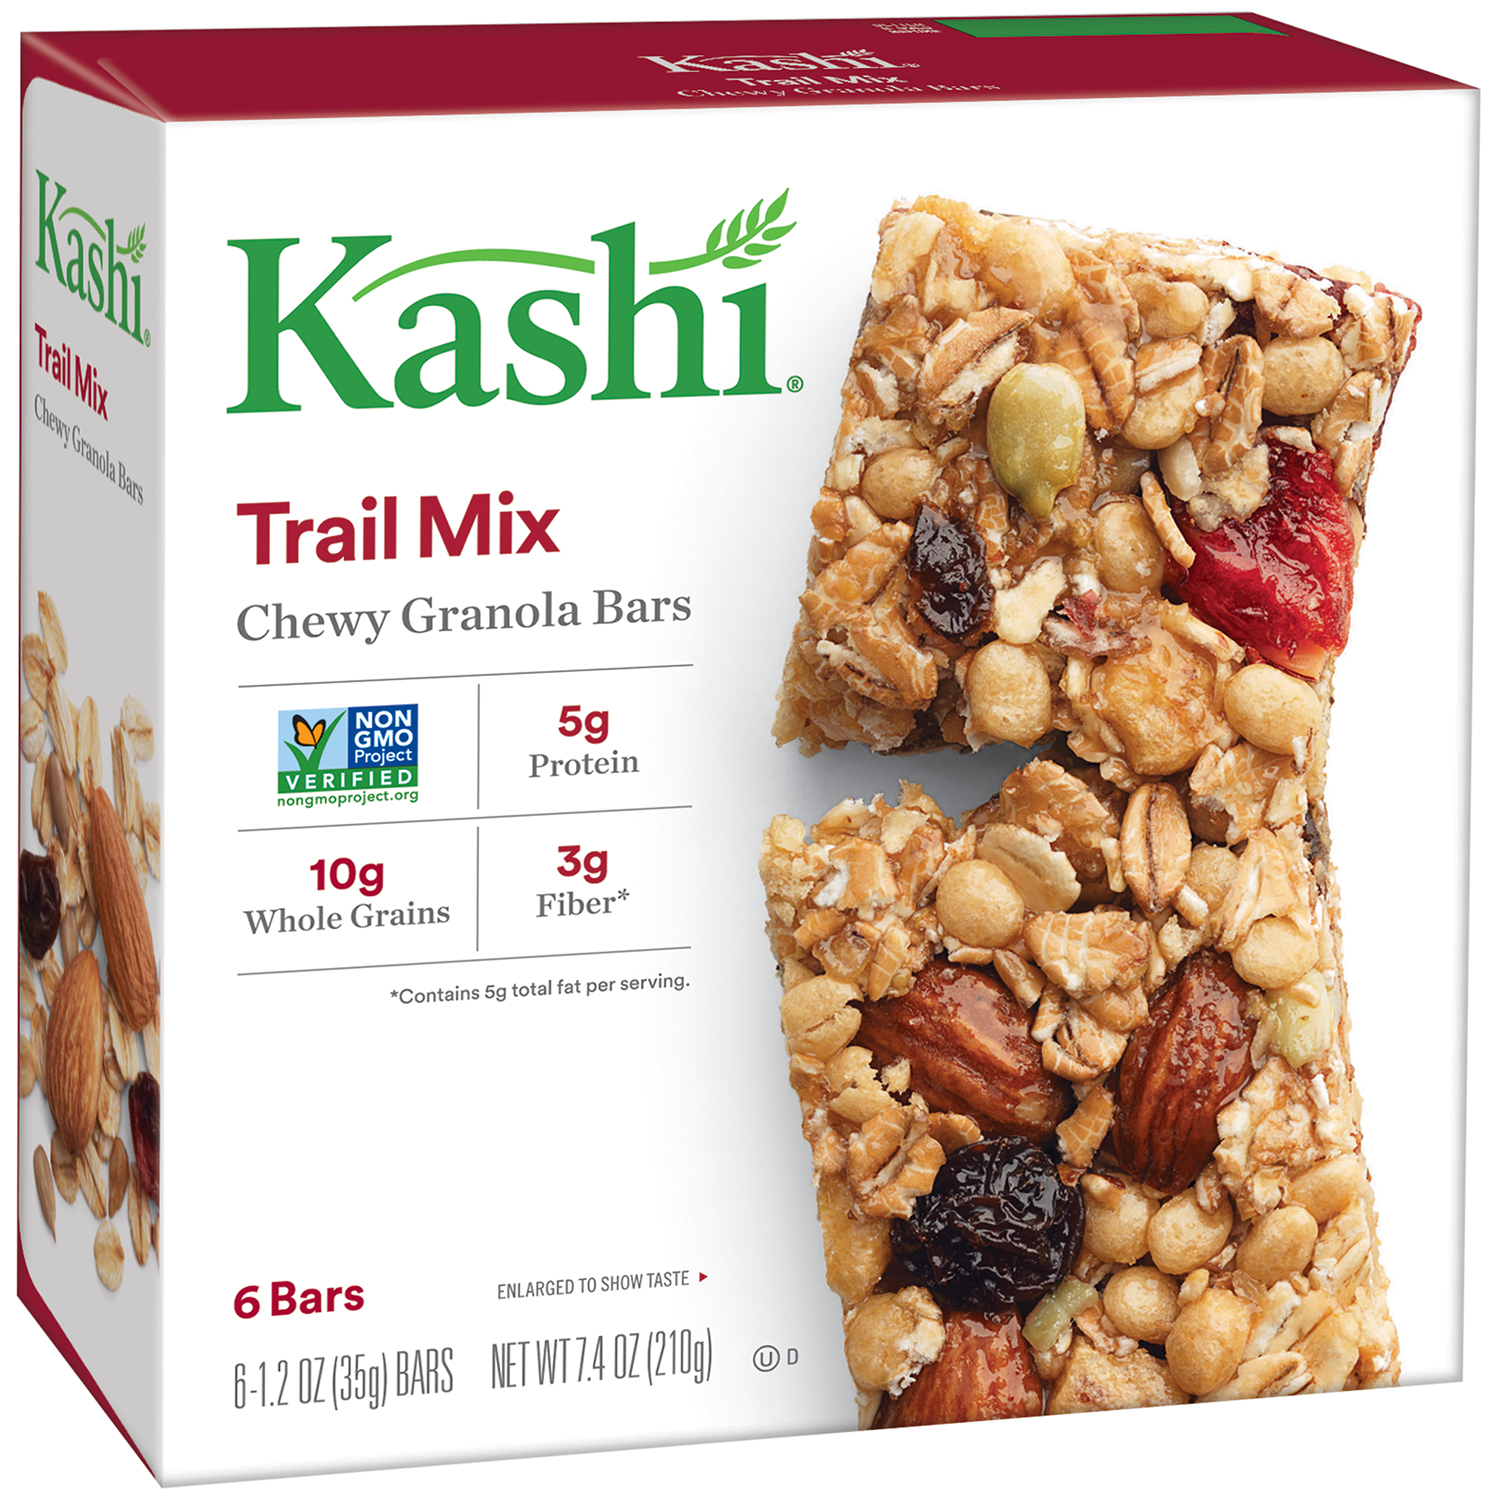 Kashi�� Trail Mix Chewy Granola Bars 6-1.2 oz. Wrappers